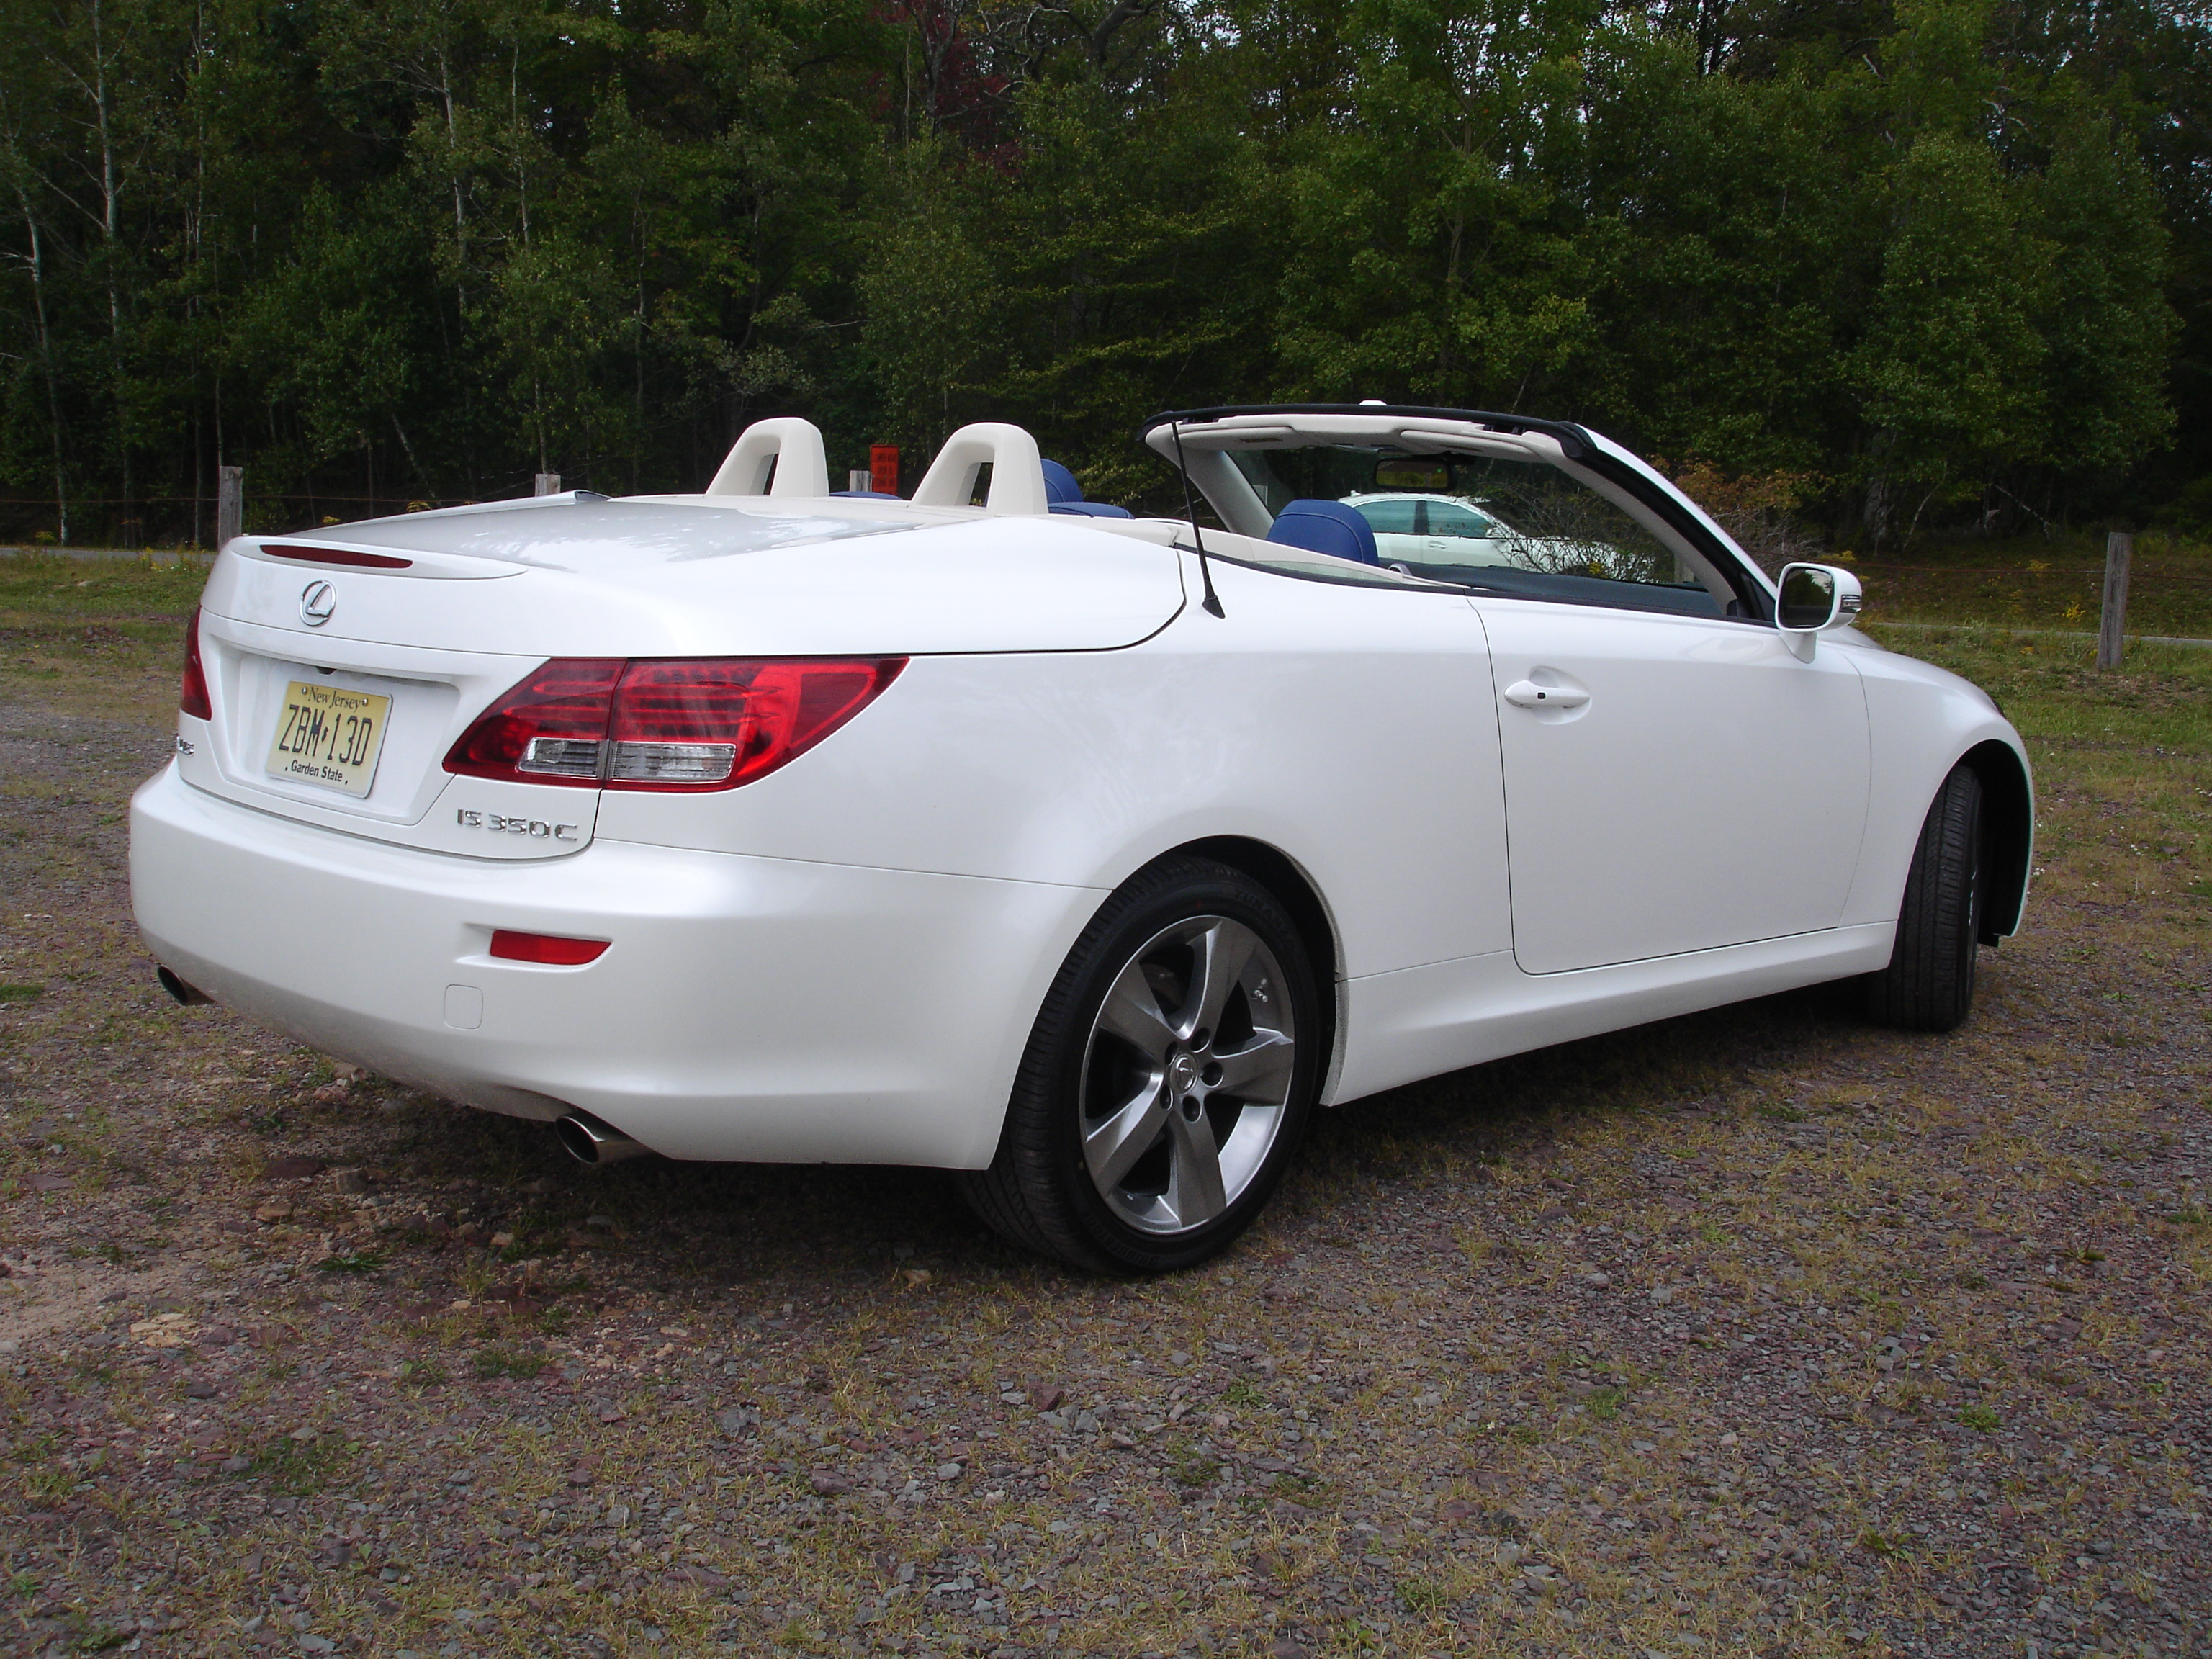 base convertible luxury inspirational is webster gallery information of lexus motors